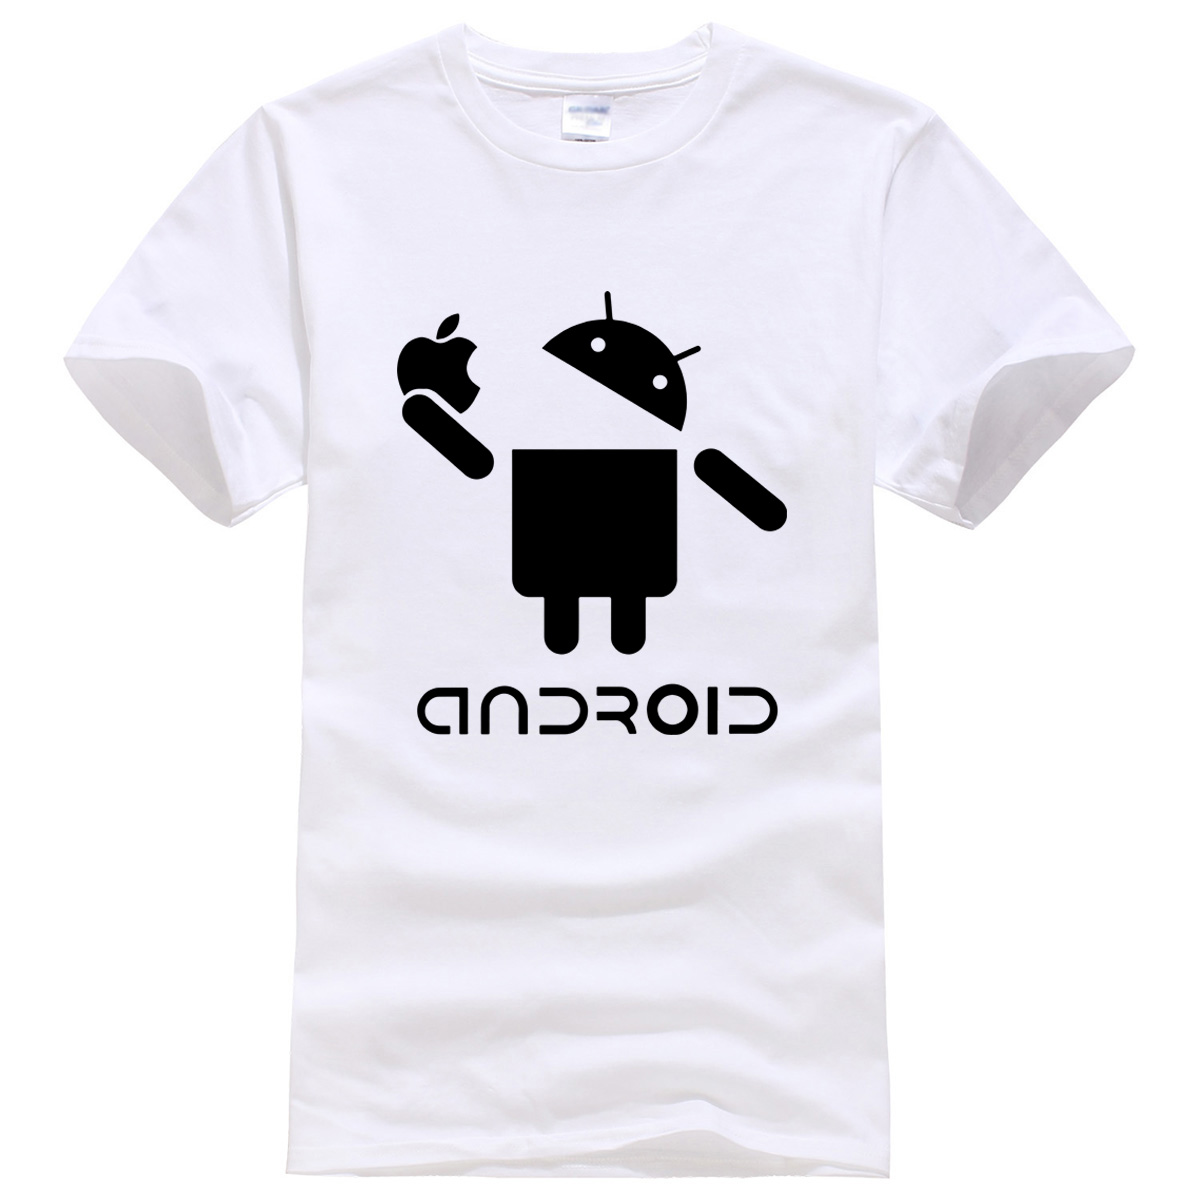 Android character pattern summer 2018 T-shirt cotton new hot sale mens T-shirts fashion casual t shirt harajuku crossfit brand